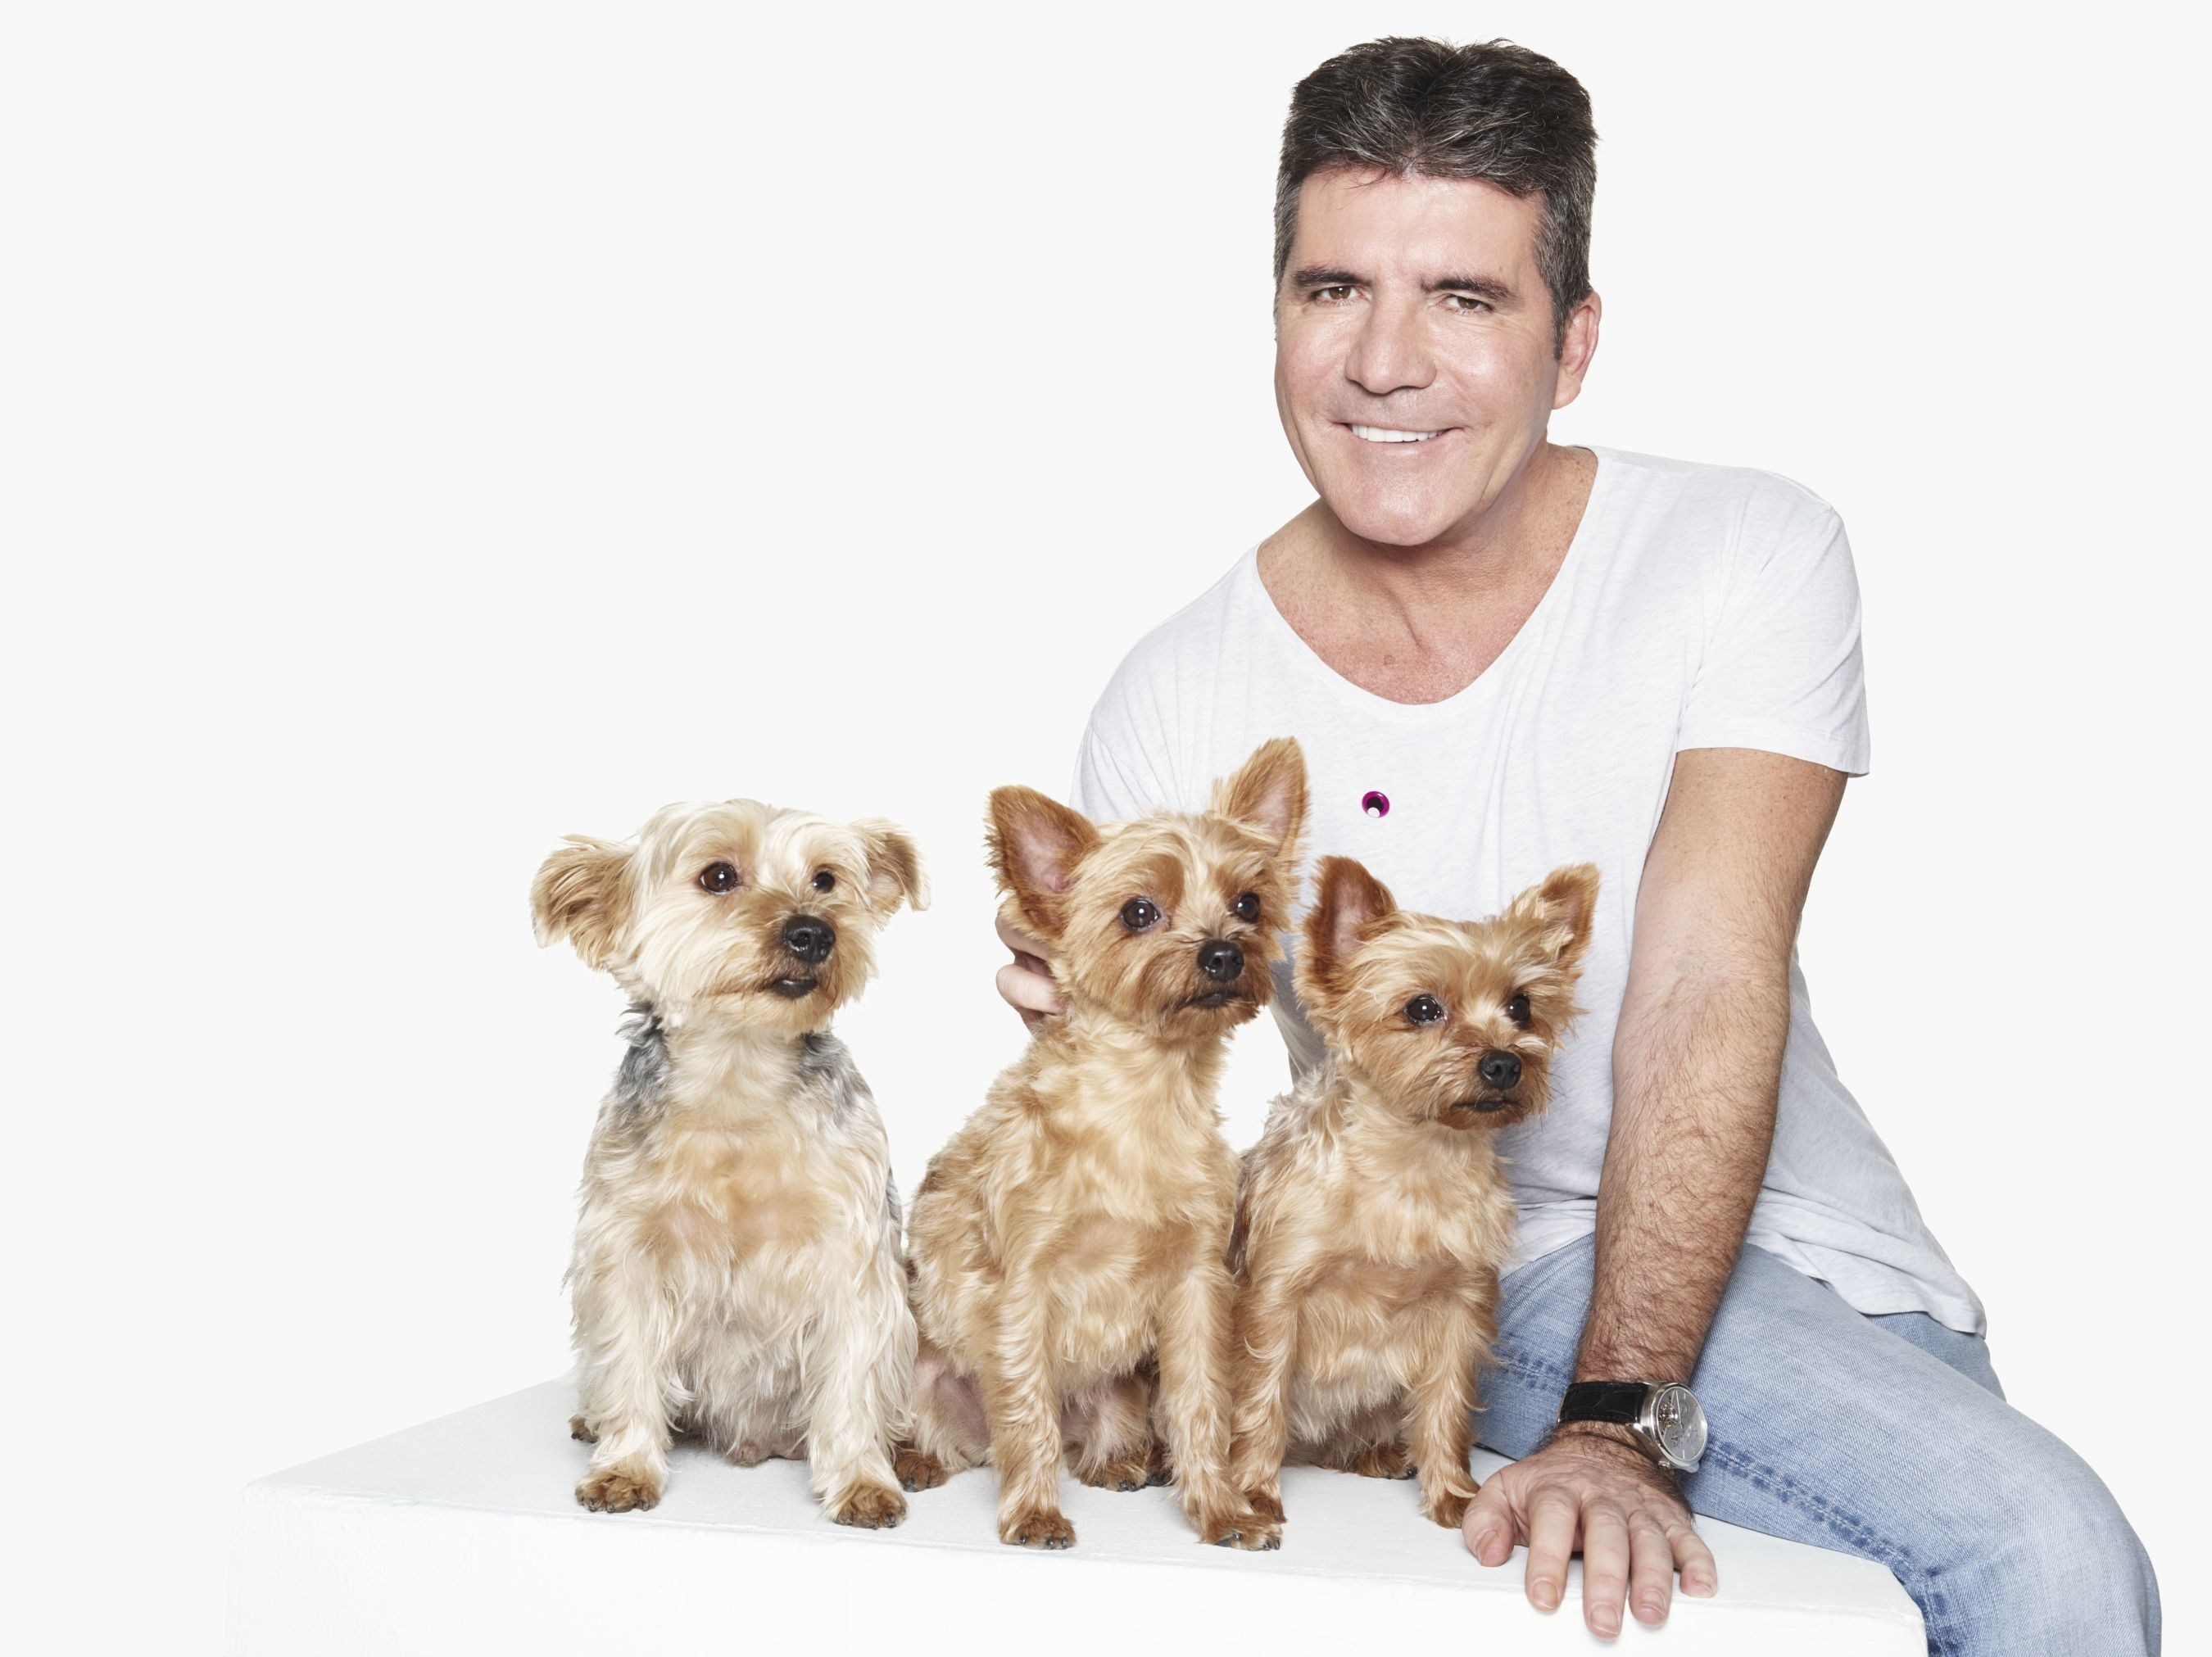 Simon Cowell by Rankin joins Cruelty Free International to end dog experiments